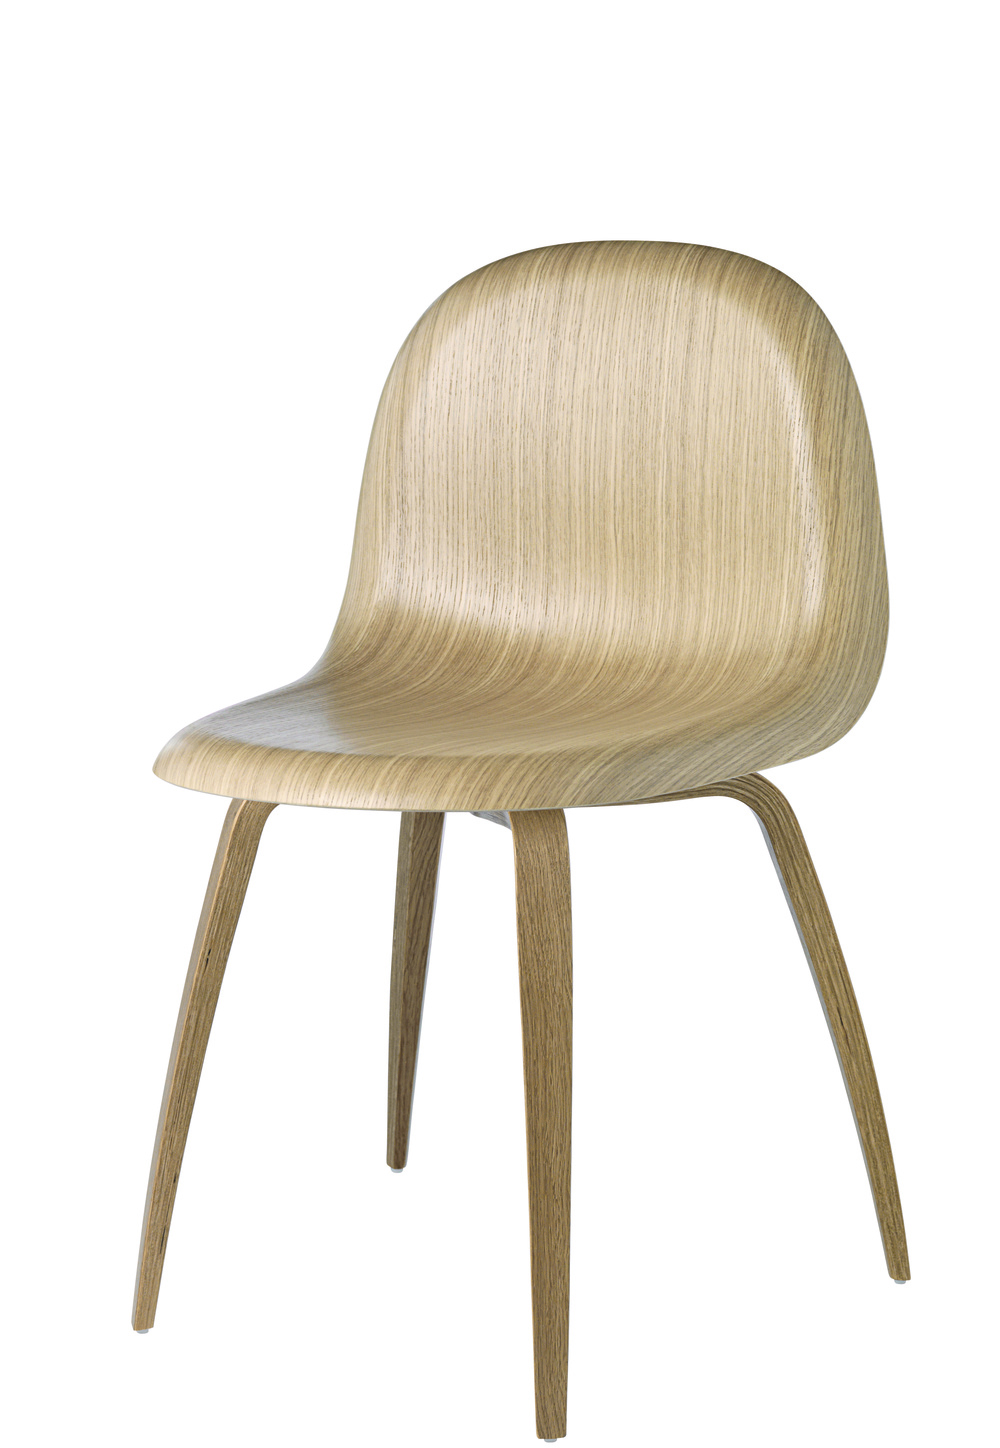 Gubi 5 Chair_Oak Shell_Oak Base_Front.jpg